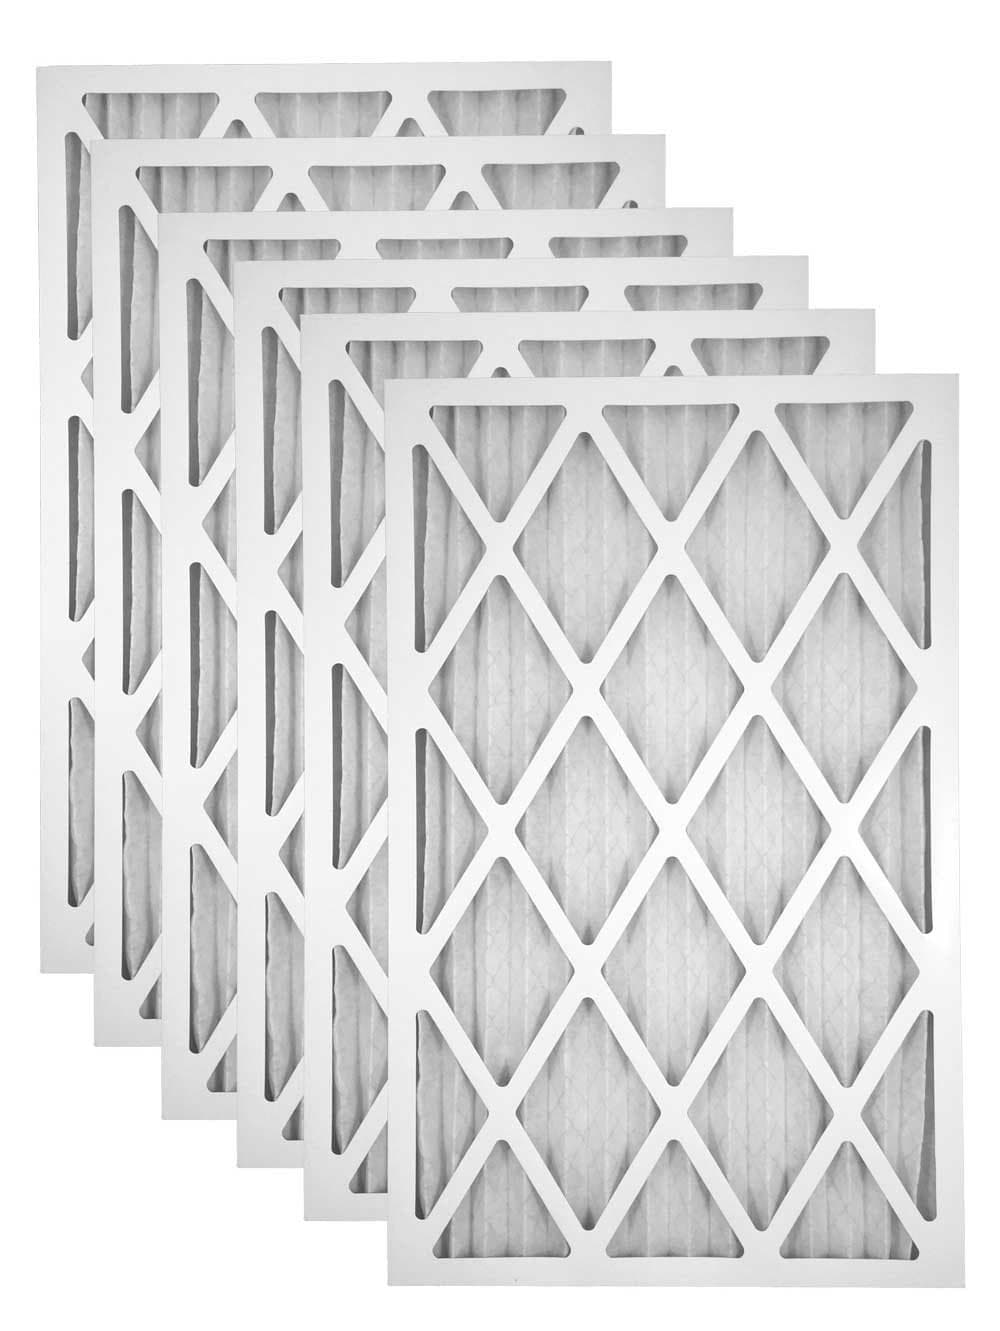 12x25x1 Merv 13 AC Furnace Filter - Case of 6